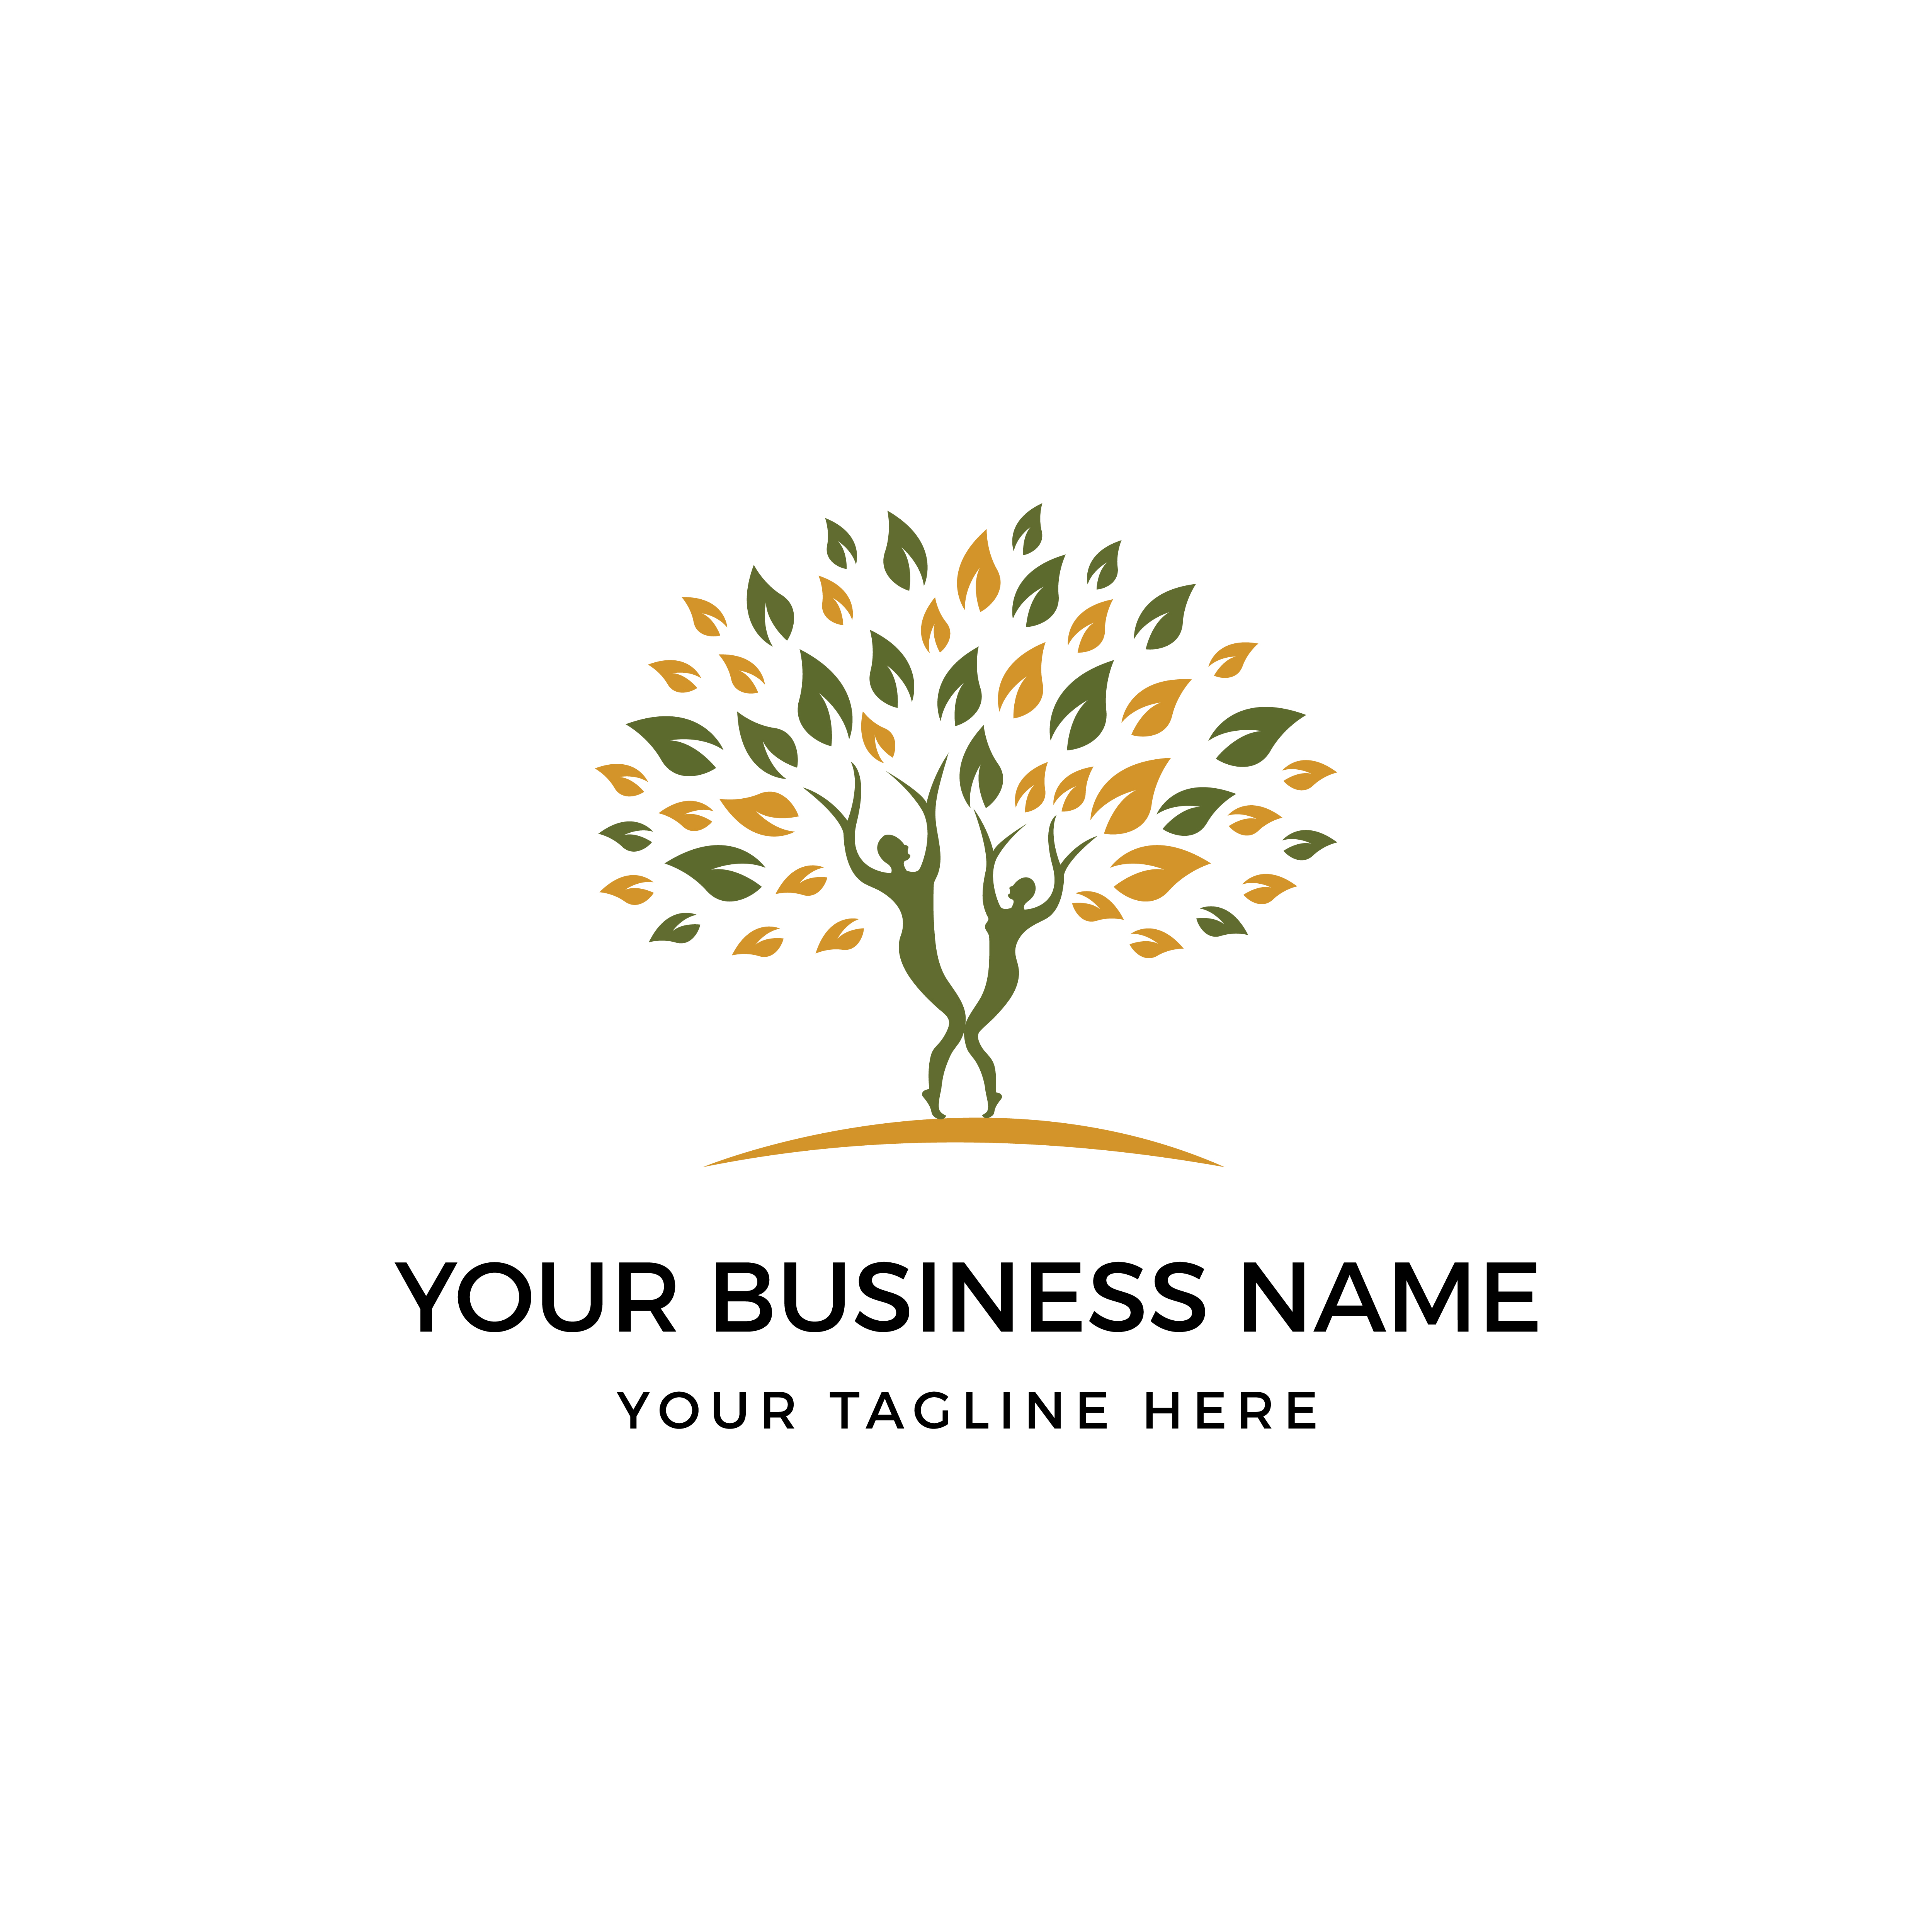 Fitness , Wellness, Spa, Yoga, Health And  Business Consulting Logo Concept by Vividsoluation  a perfect logo for Spa & Esthetics